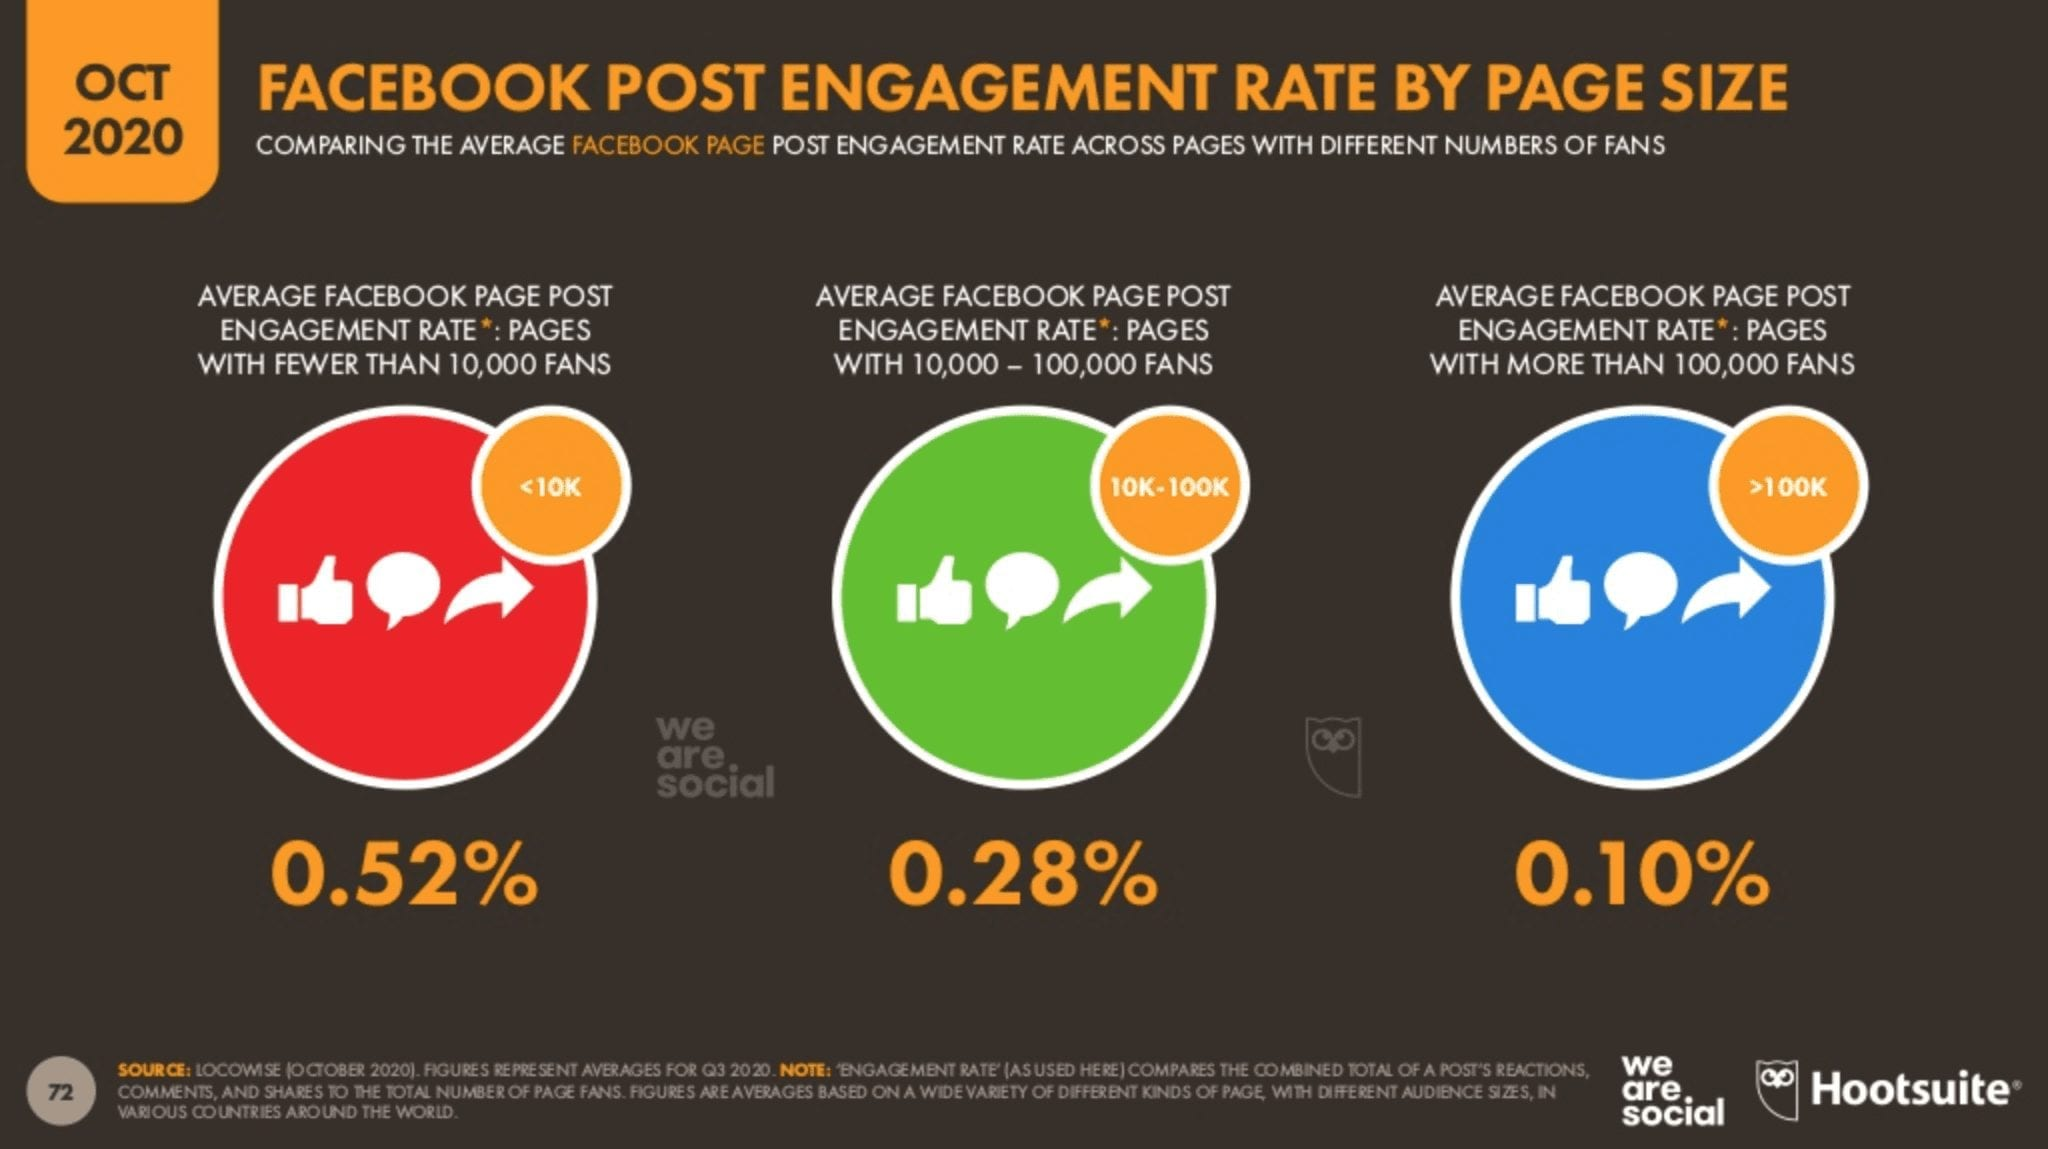 eNitiate   Bra Willy Seyama   Digital 2020 Report   7 Most Valuable Lessons   October Edition   Facebook Post Engagement Rate by Page Size   Nov 2020